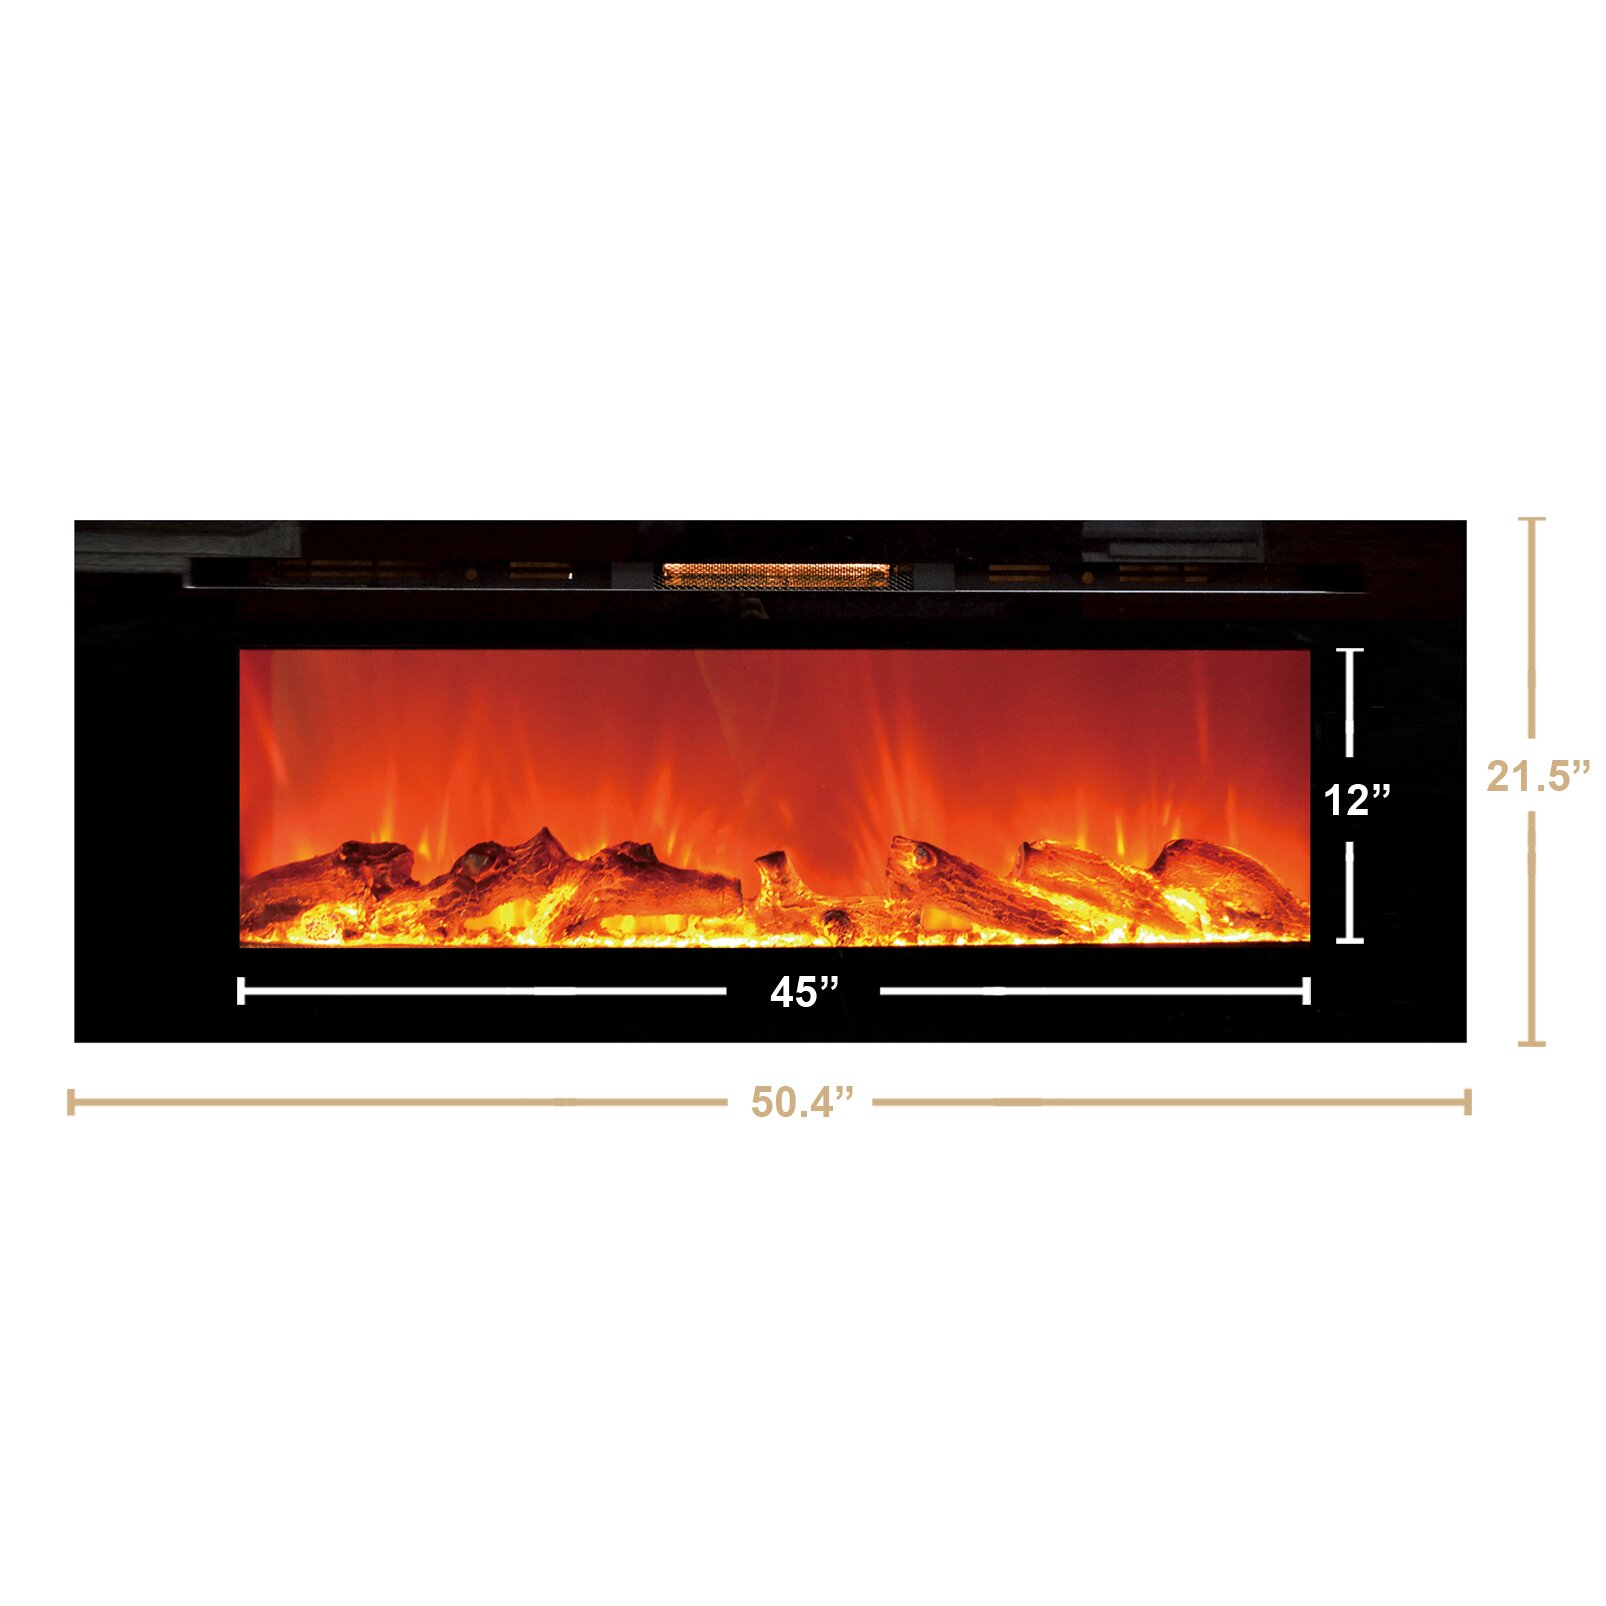 Touchstone Sideline Wall Mount Electric Fireplace Reviews